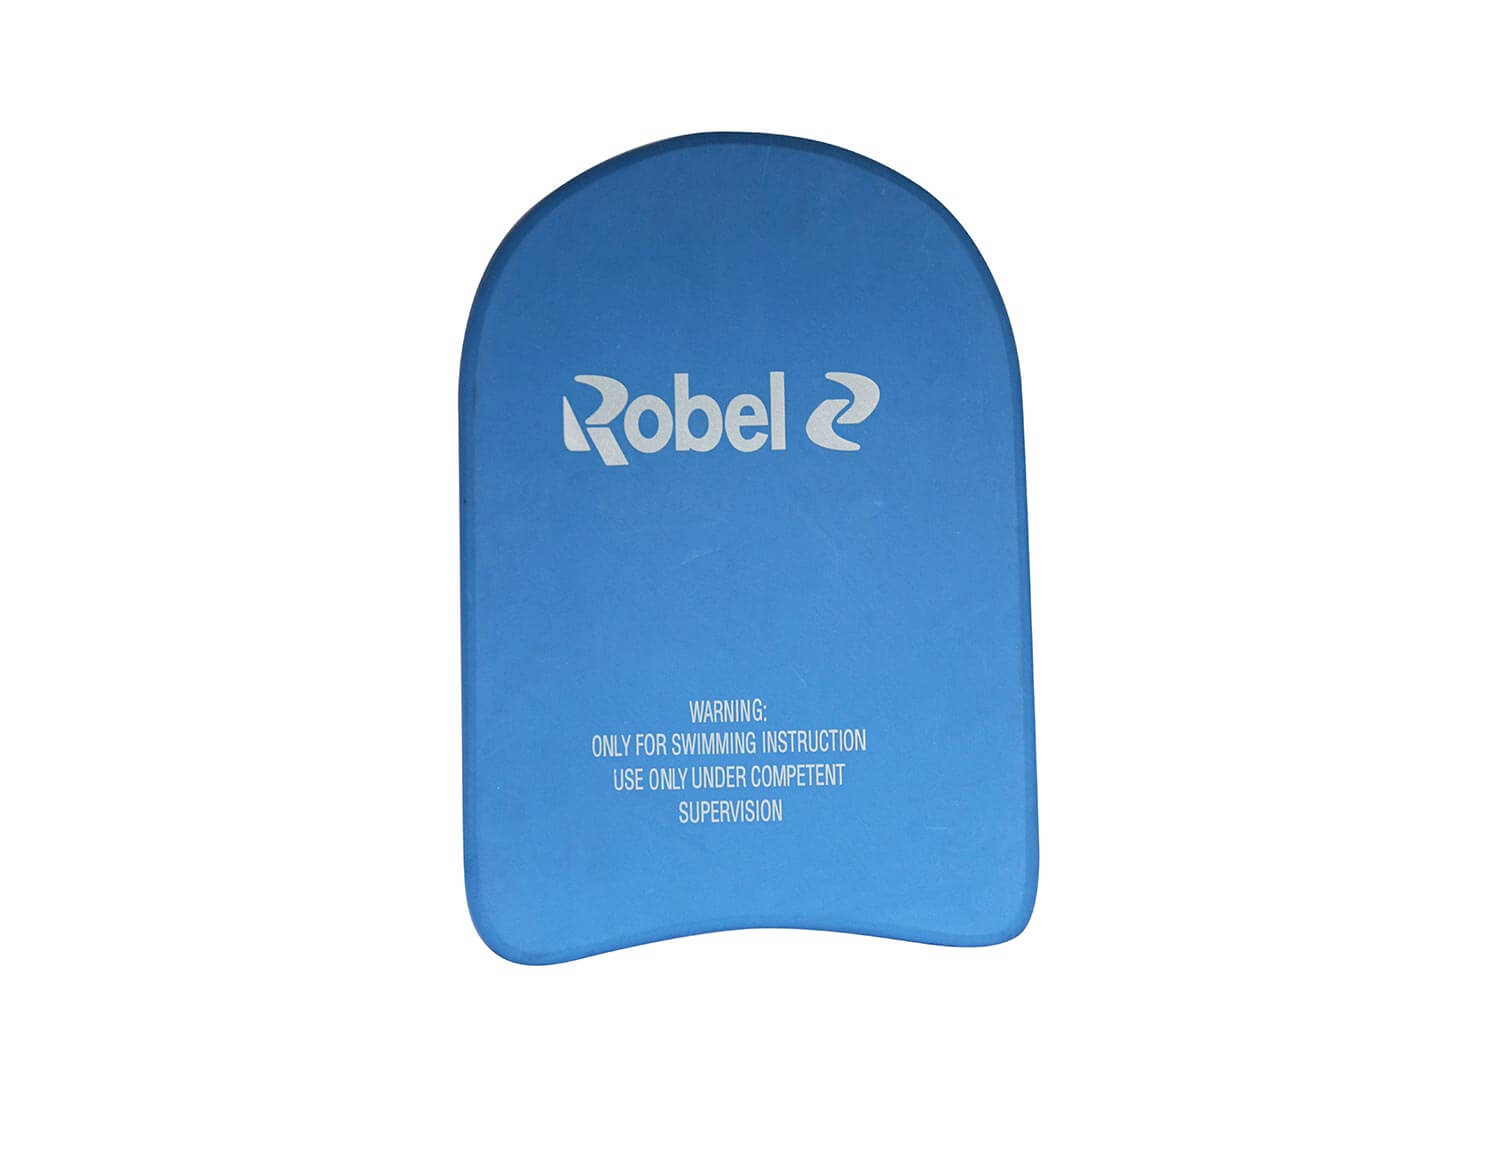 Tavoletta piscina robel per allenamento accessori nuoto for Attrezzi piscina